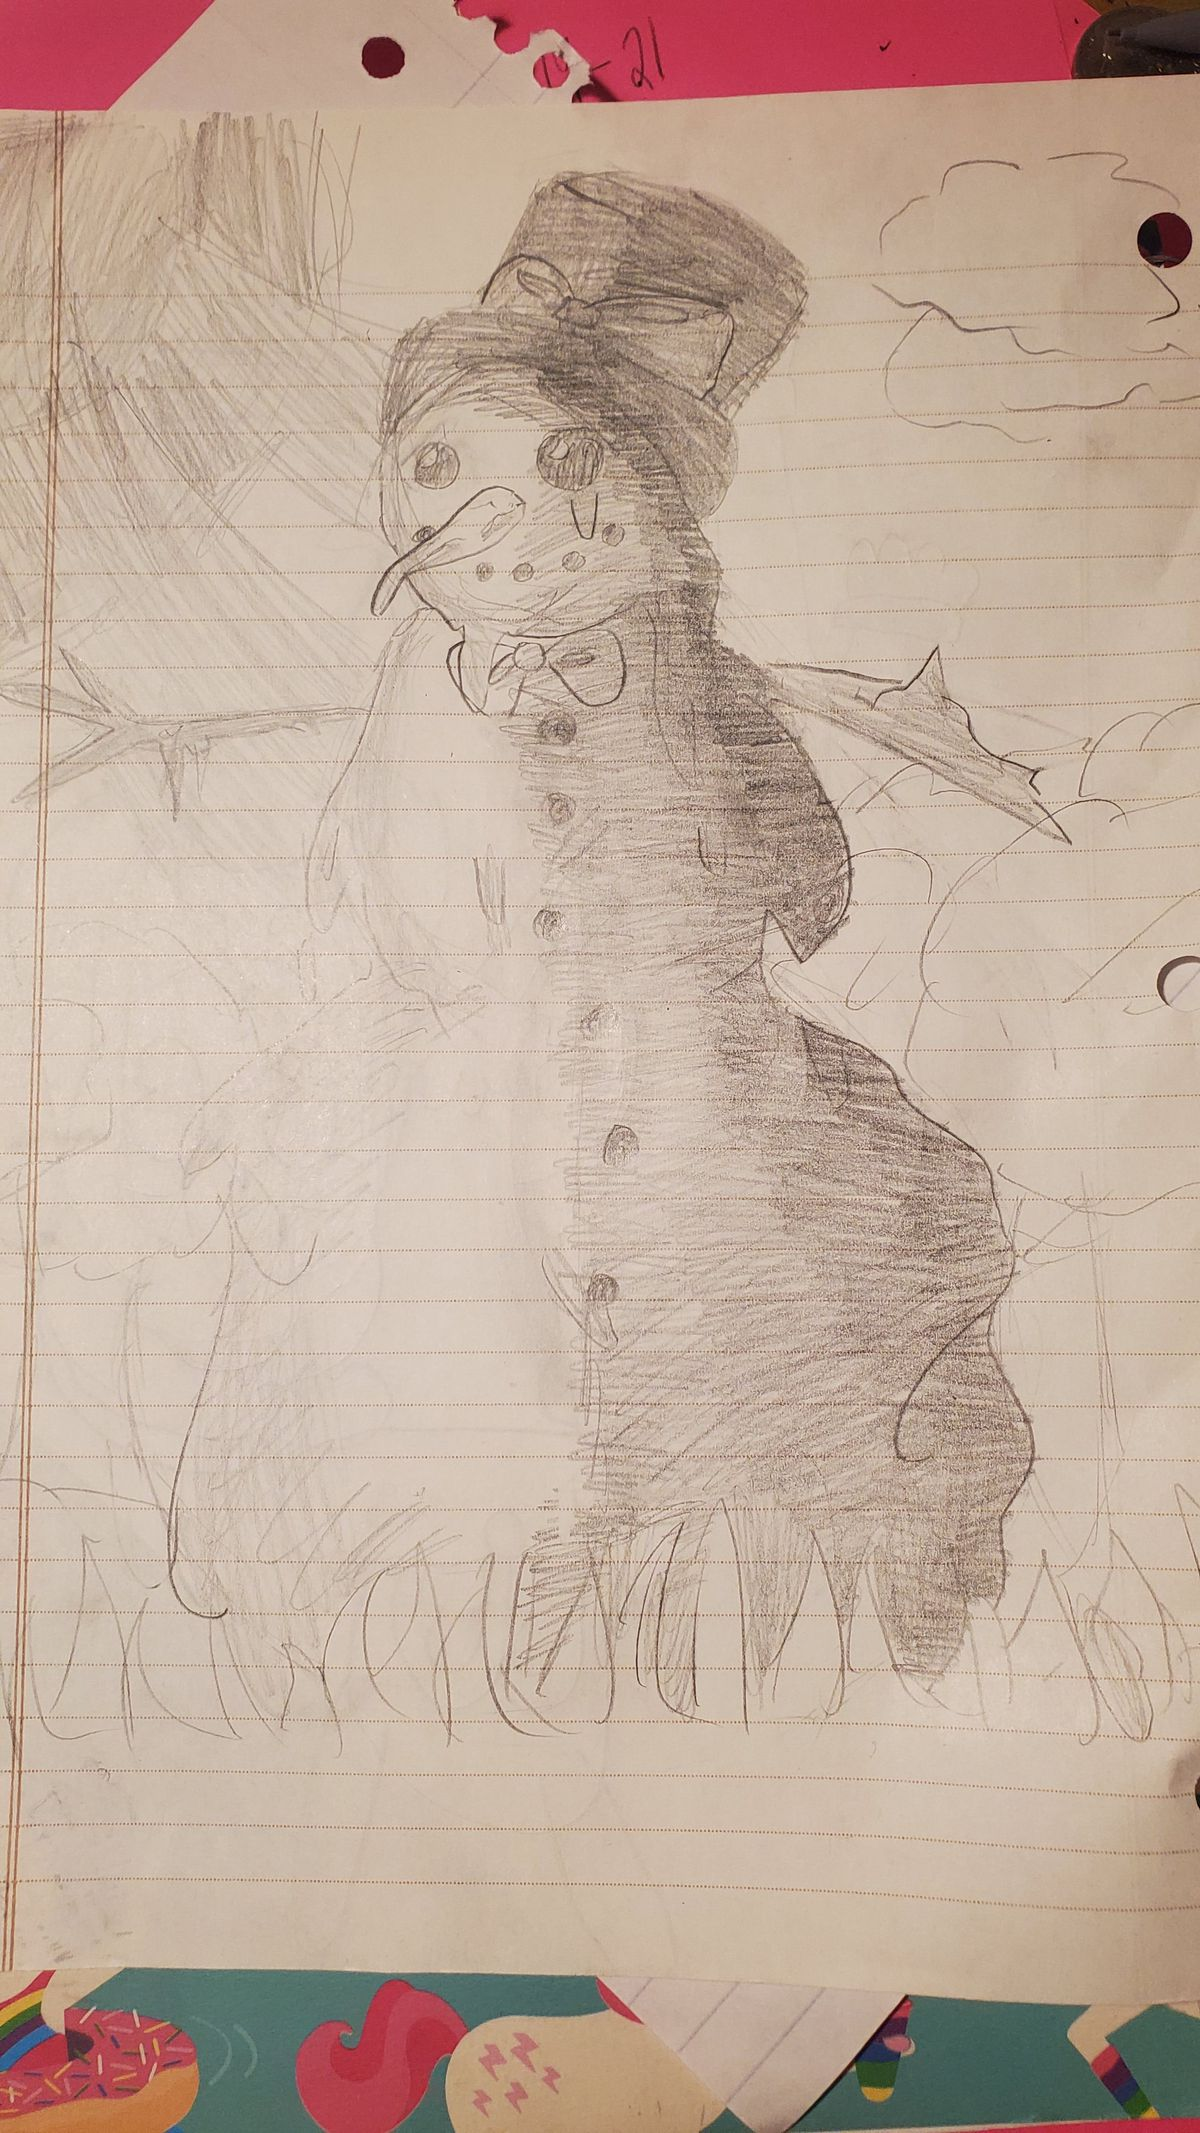 A snowman sketch by Elizabeth F., 13, a seventh-grader at Kimball Middle School in Elgin.